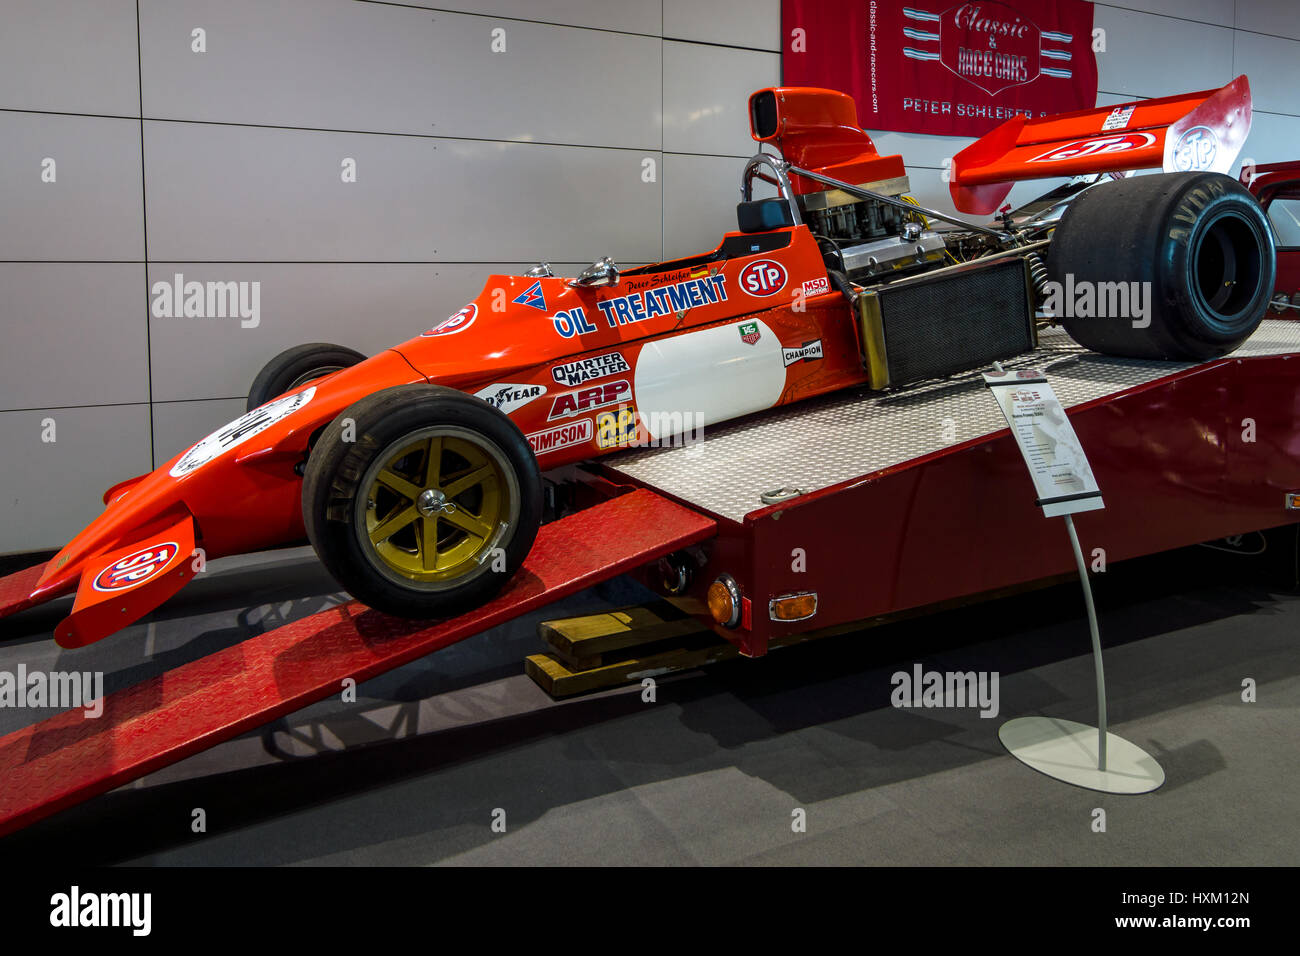 stuttgart germany march 02 2017 racing car march 73a f5000 stock photo royalty free image. Black Bedroom Furniture Sets. Home Design Ideas